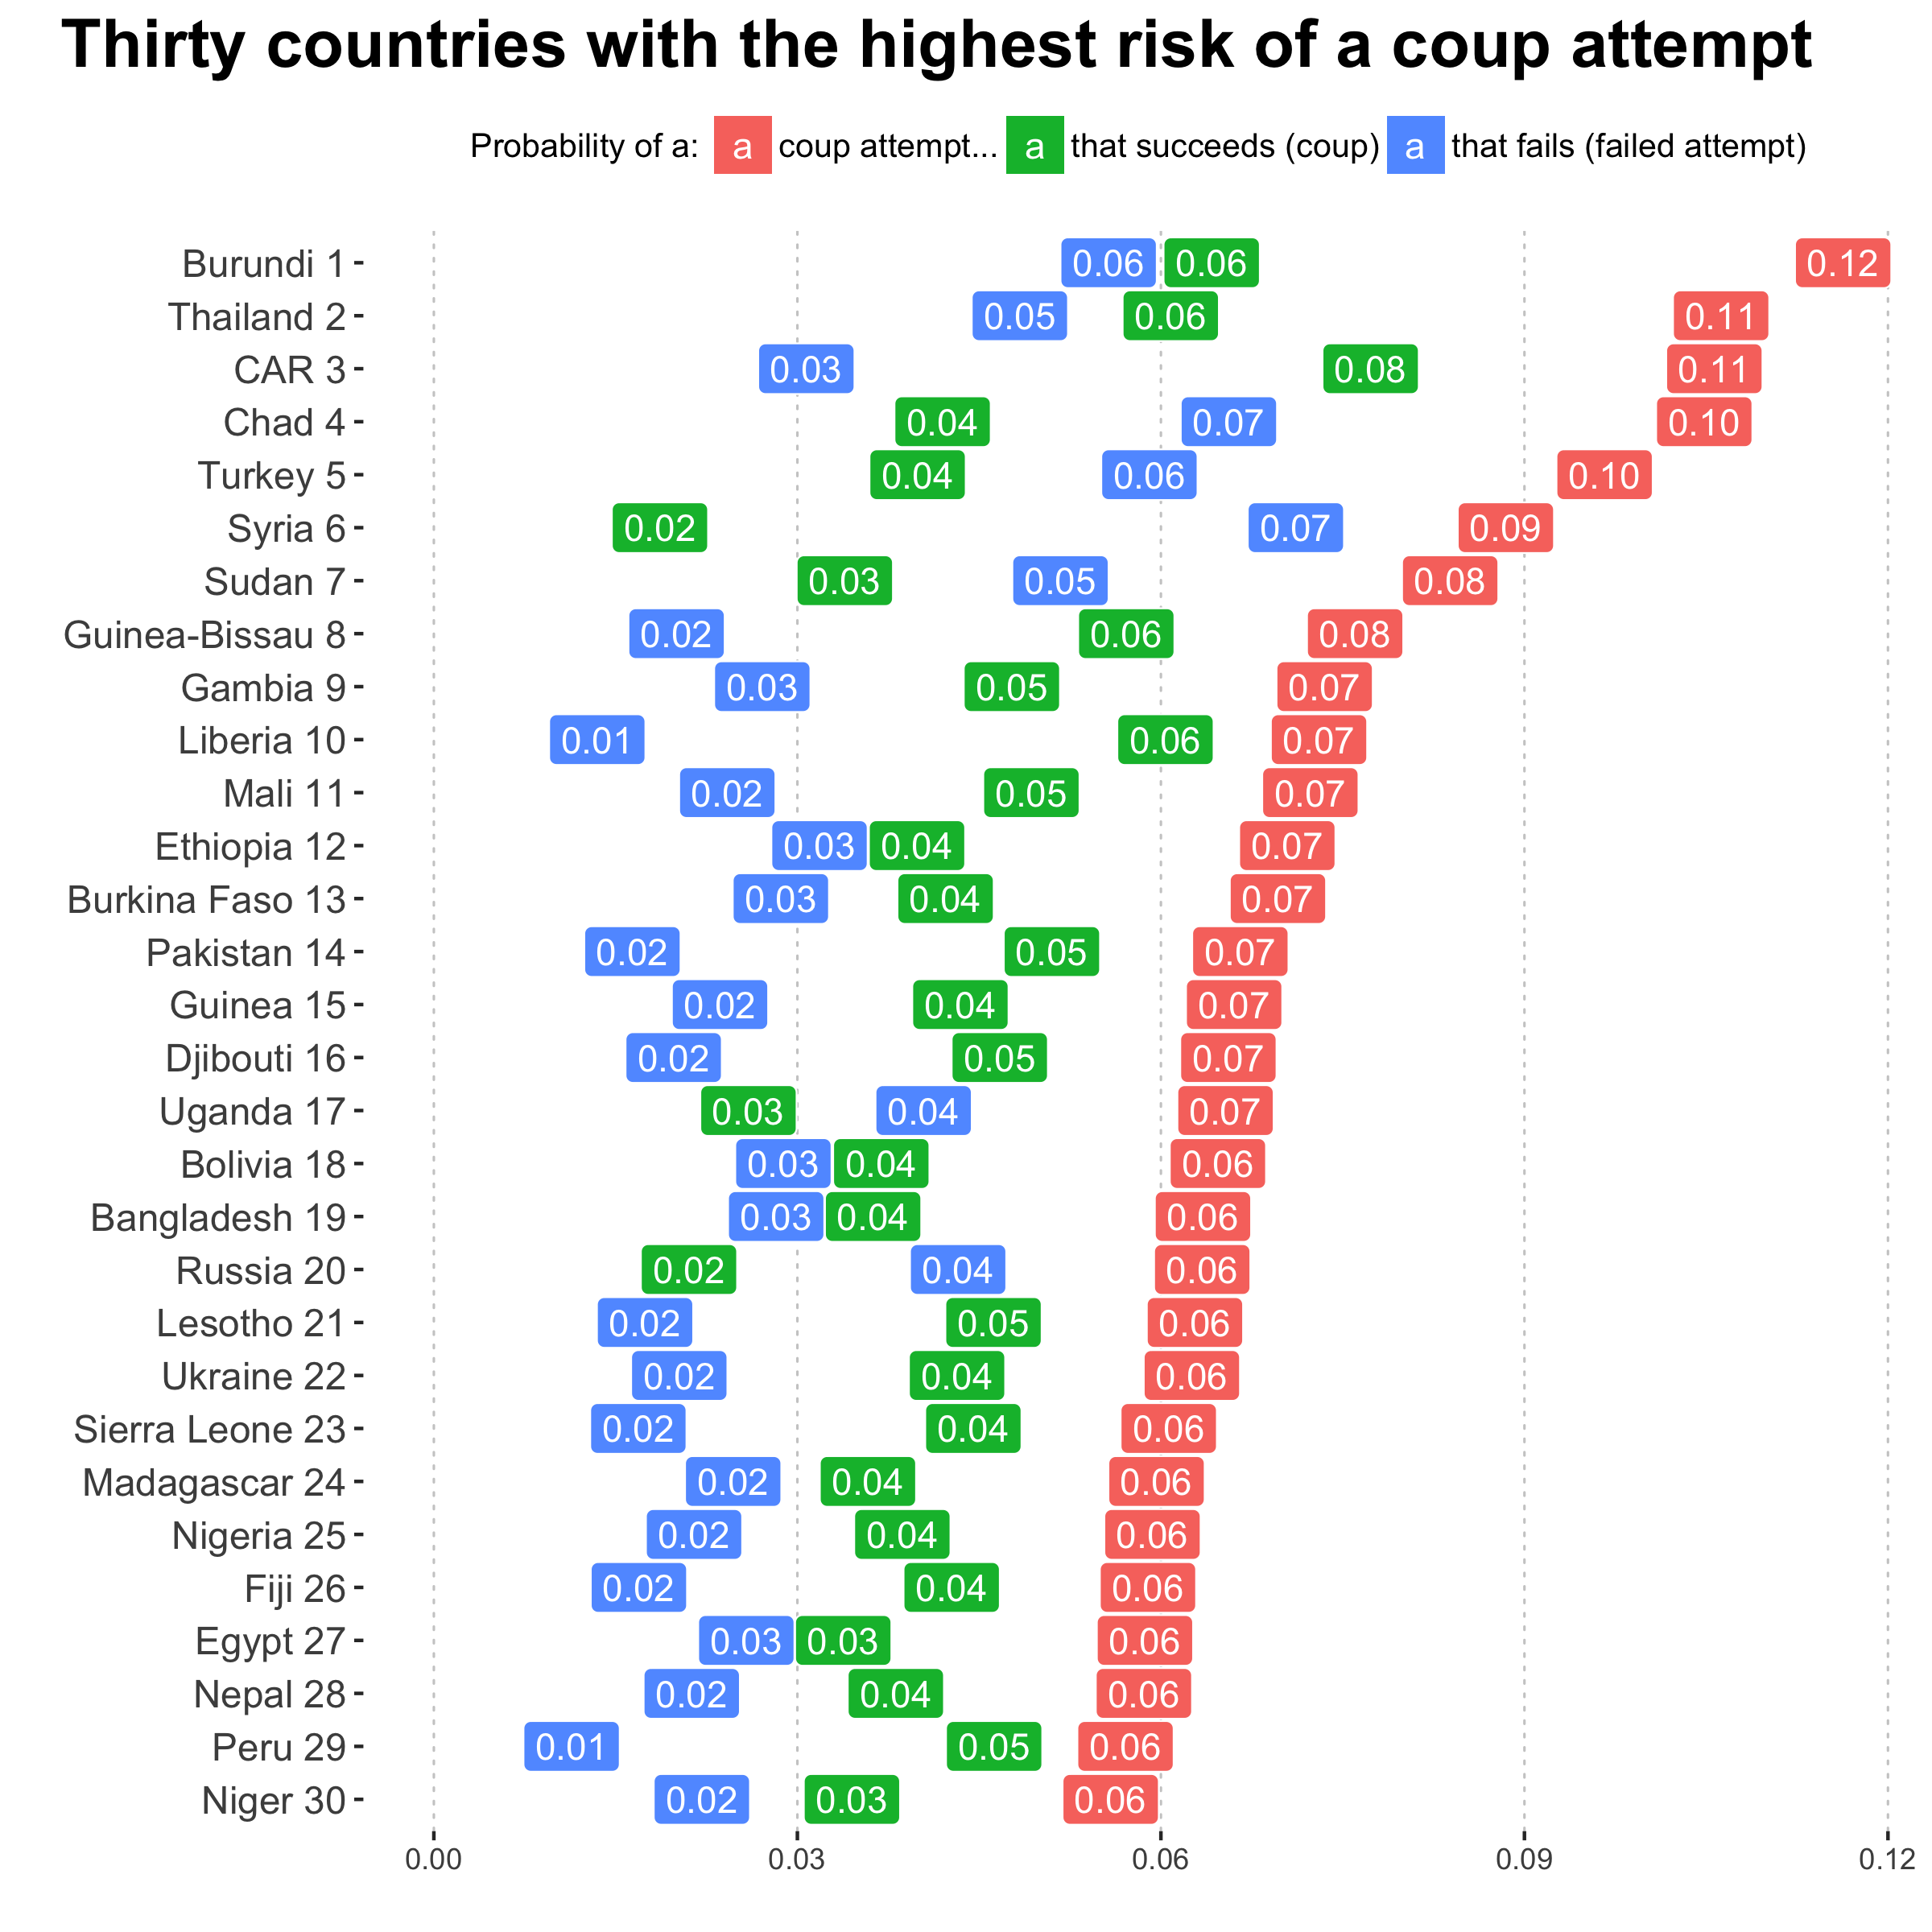 Thirty countries with the hightest risk of a coup attempt